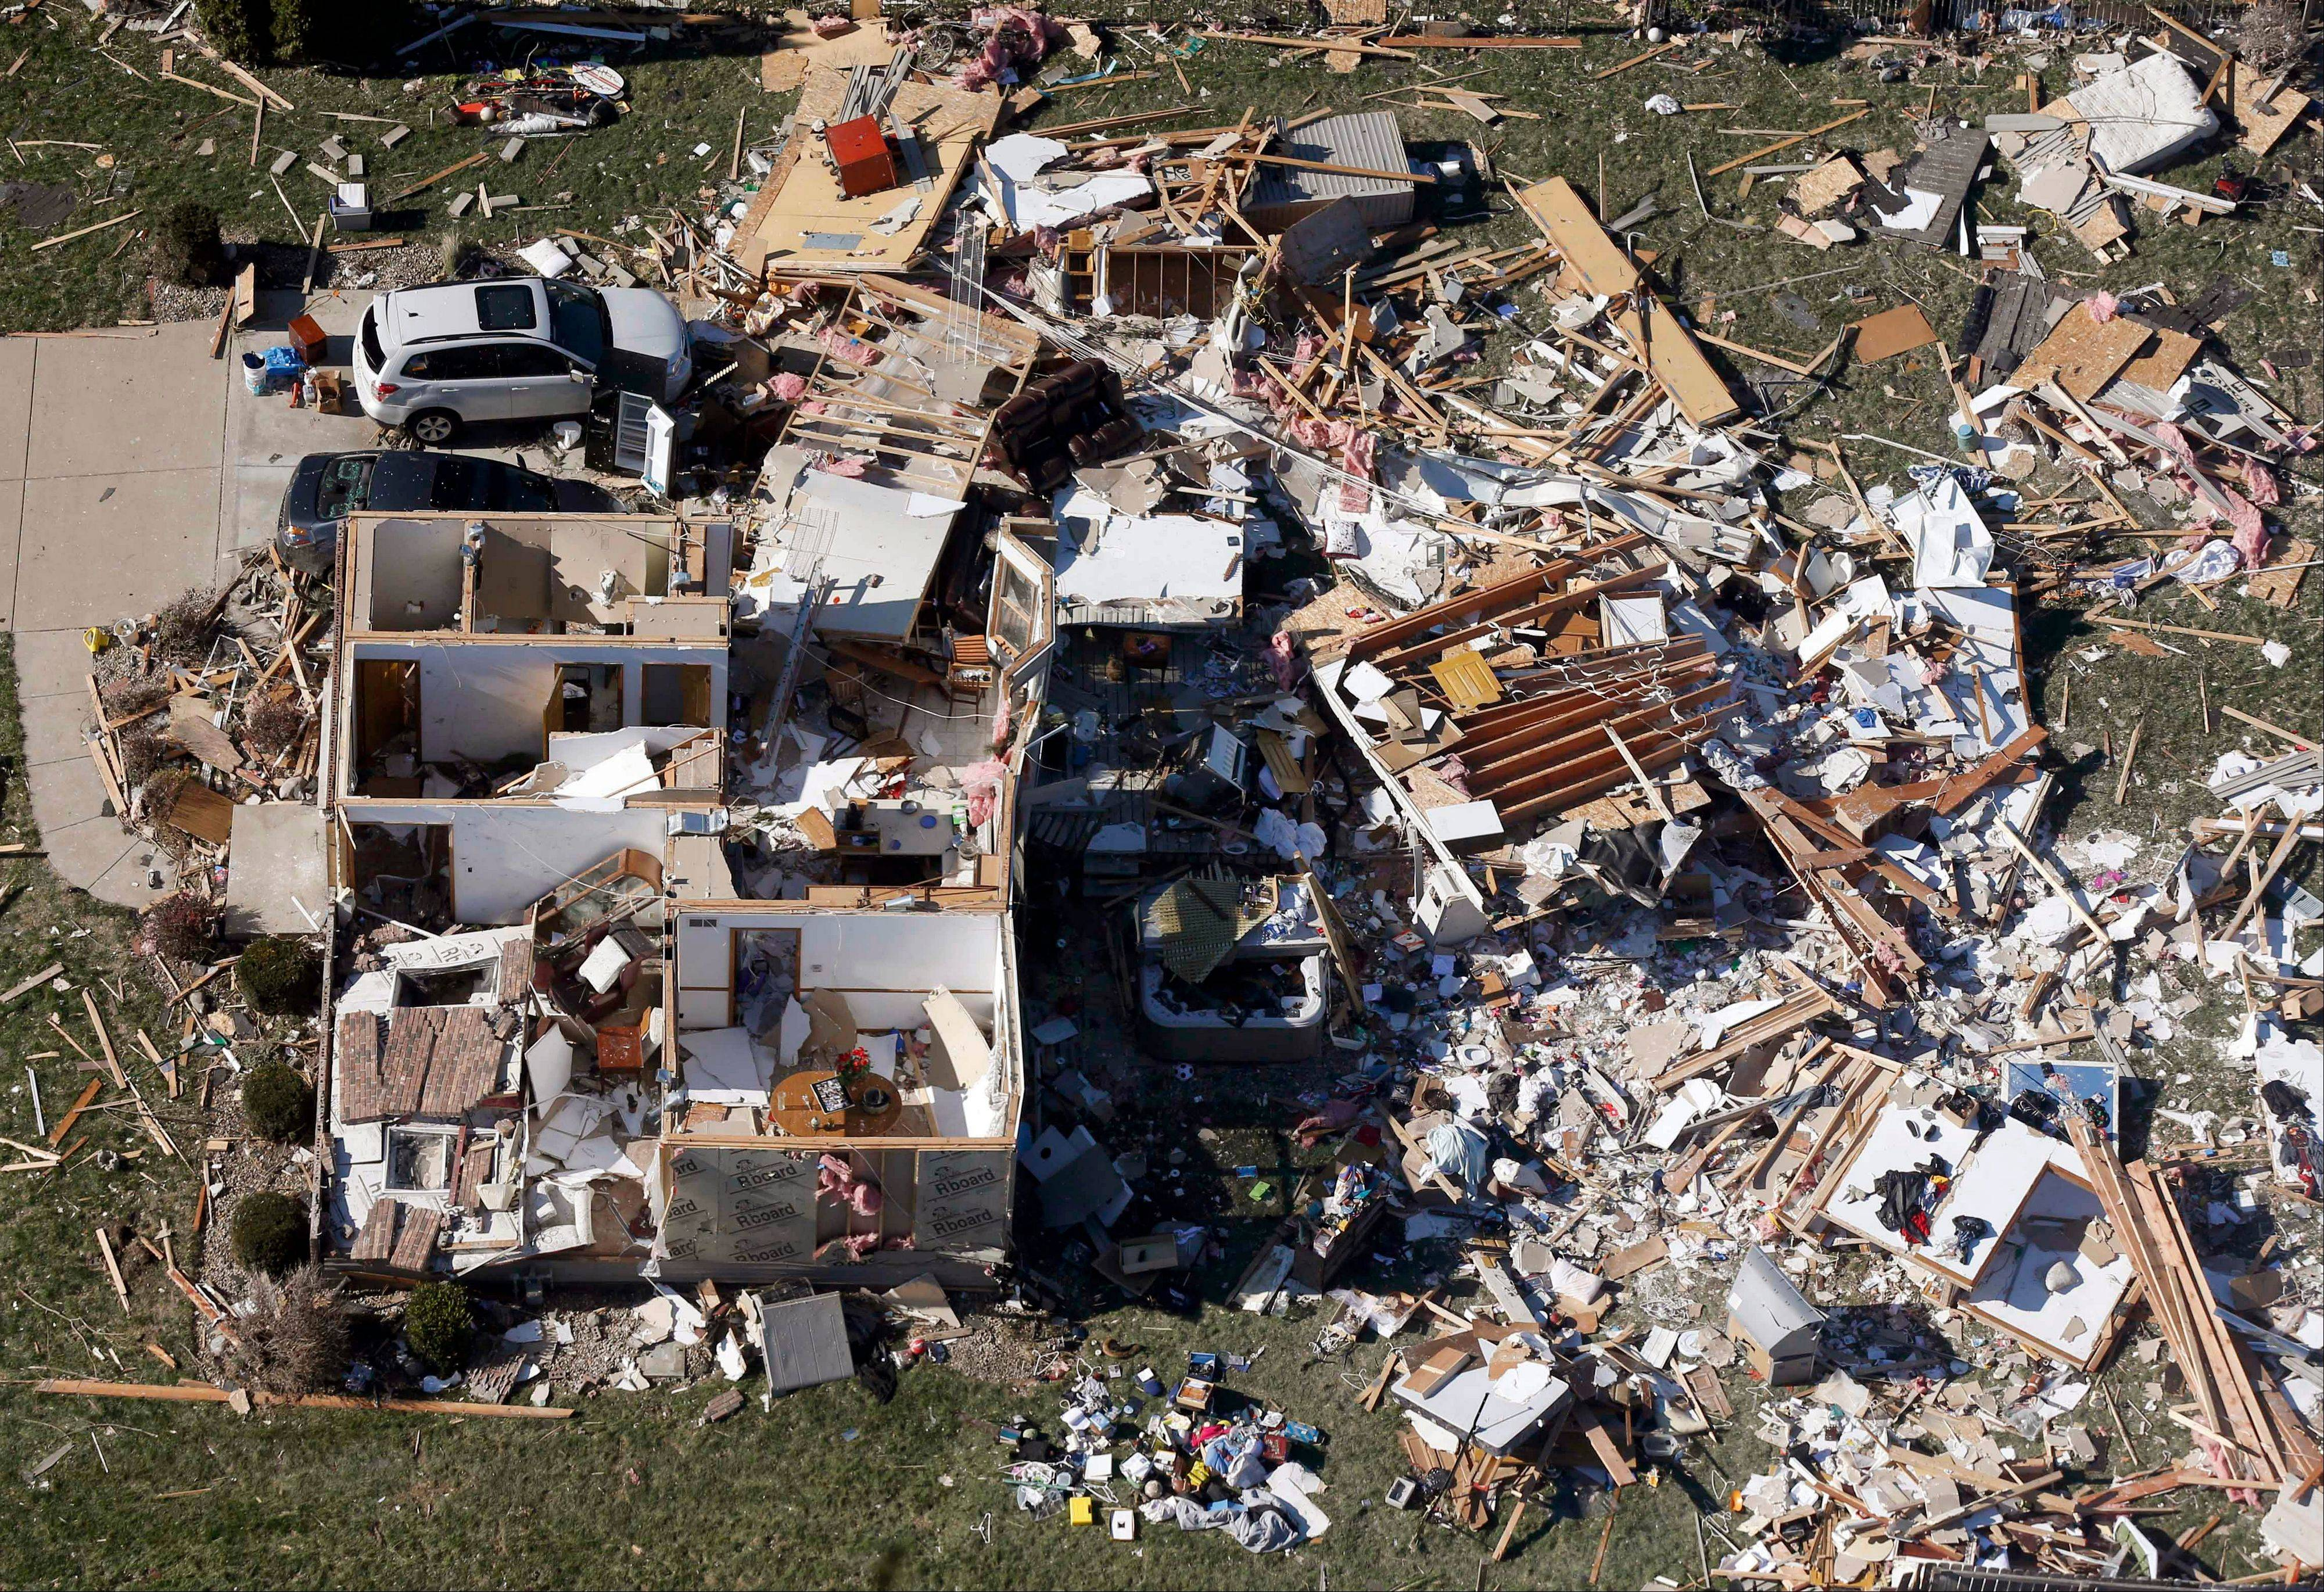 This aerial view on Monday, Nov. 18, 2013, shows a home that was destroyed by a tornado that hit the western Illinois town of Washington on Sunday. It was one of the worst-hit areas after intense storms and tornadoes swept through Illinois. The National Weather Service says the tornado that hit Washington had a preliminary rating of EF-4, meaning wind speeds of 170 mph to 190 mph.